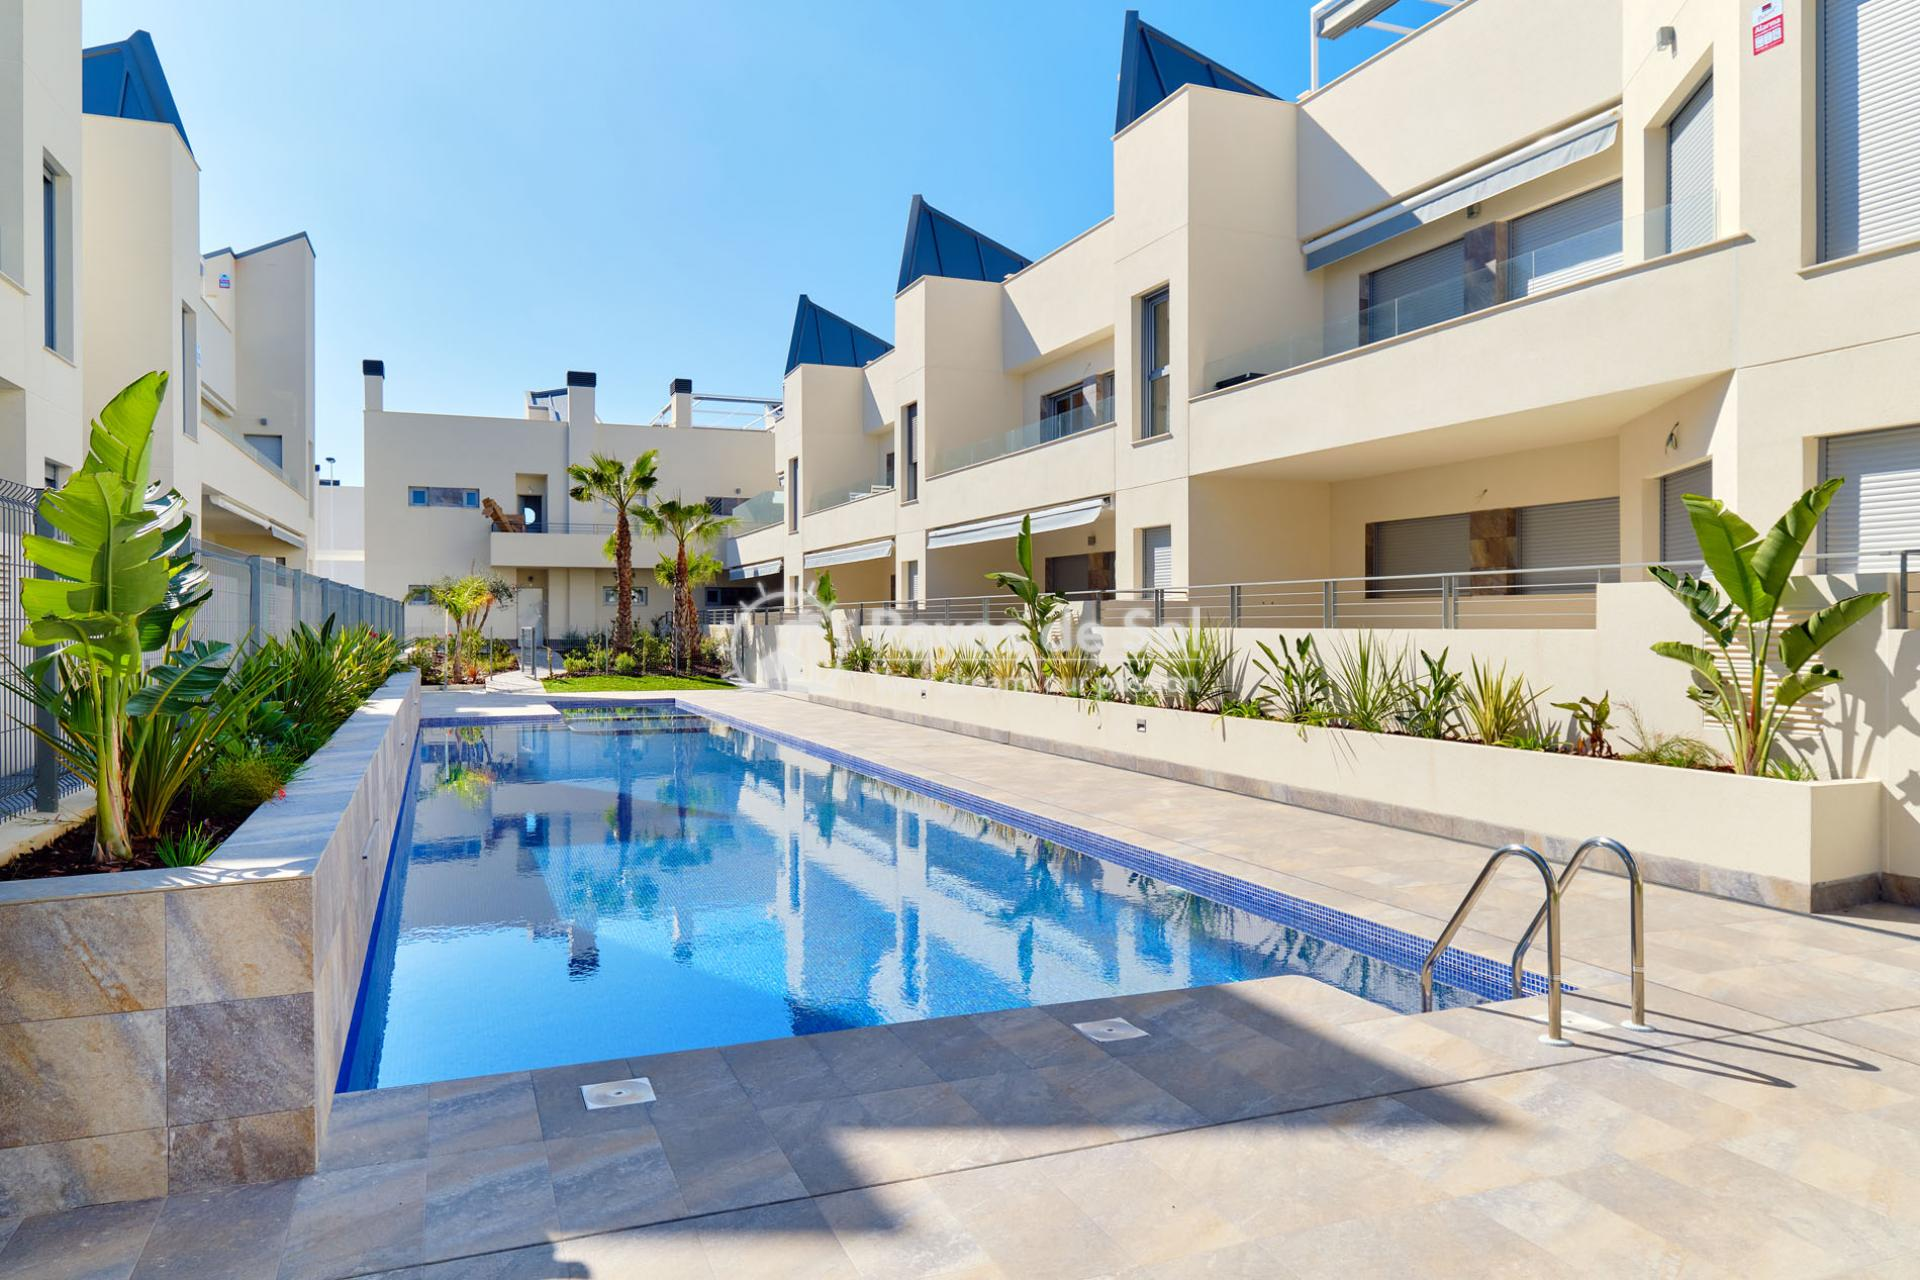 Townhouse  in Torrevieja, Costa Blanca (vamalia2-dpx) - 39